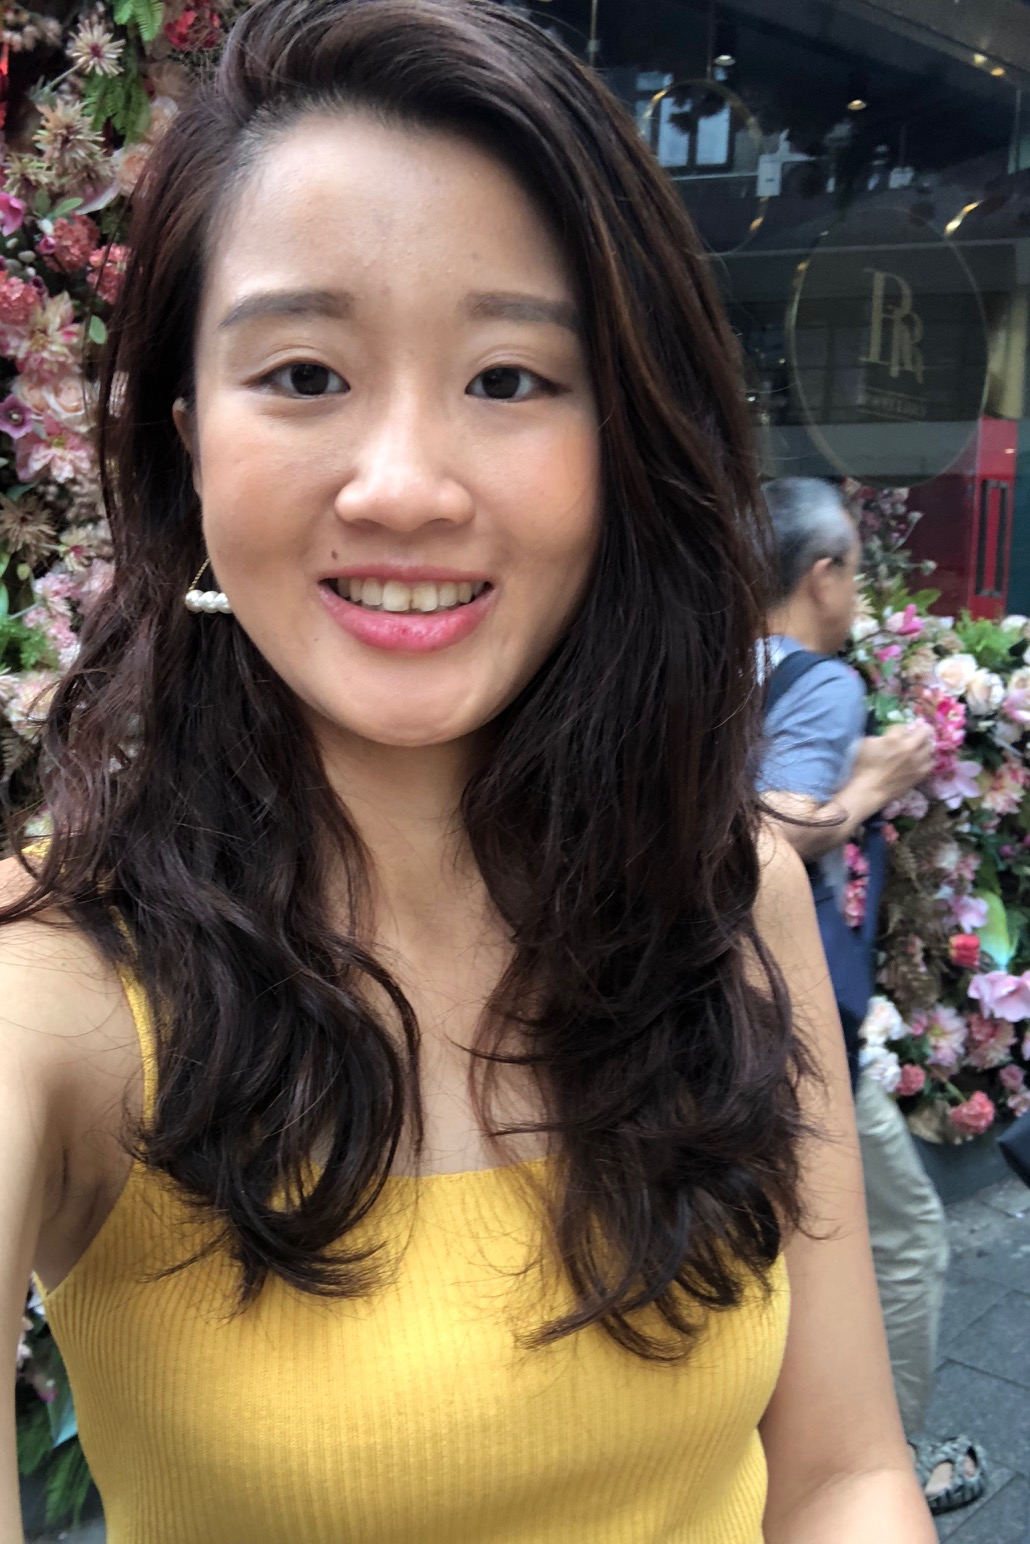 Teaching English and Living in Taiwan Tutors of Chinese Available  華語教師、華語家教, MANDARIN CHINESE TEACHING For BEGINNER or BUSINESS NEEDS. (CERTIFICATE OF TCSOL for CHINESE TEACHING) image